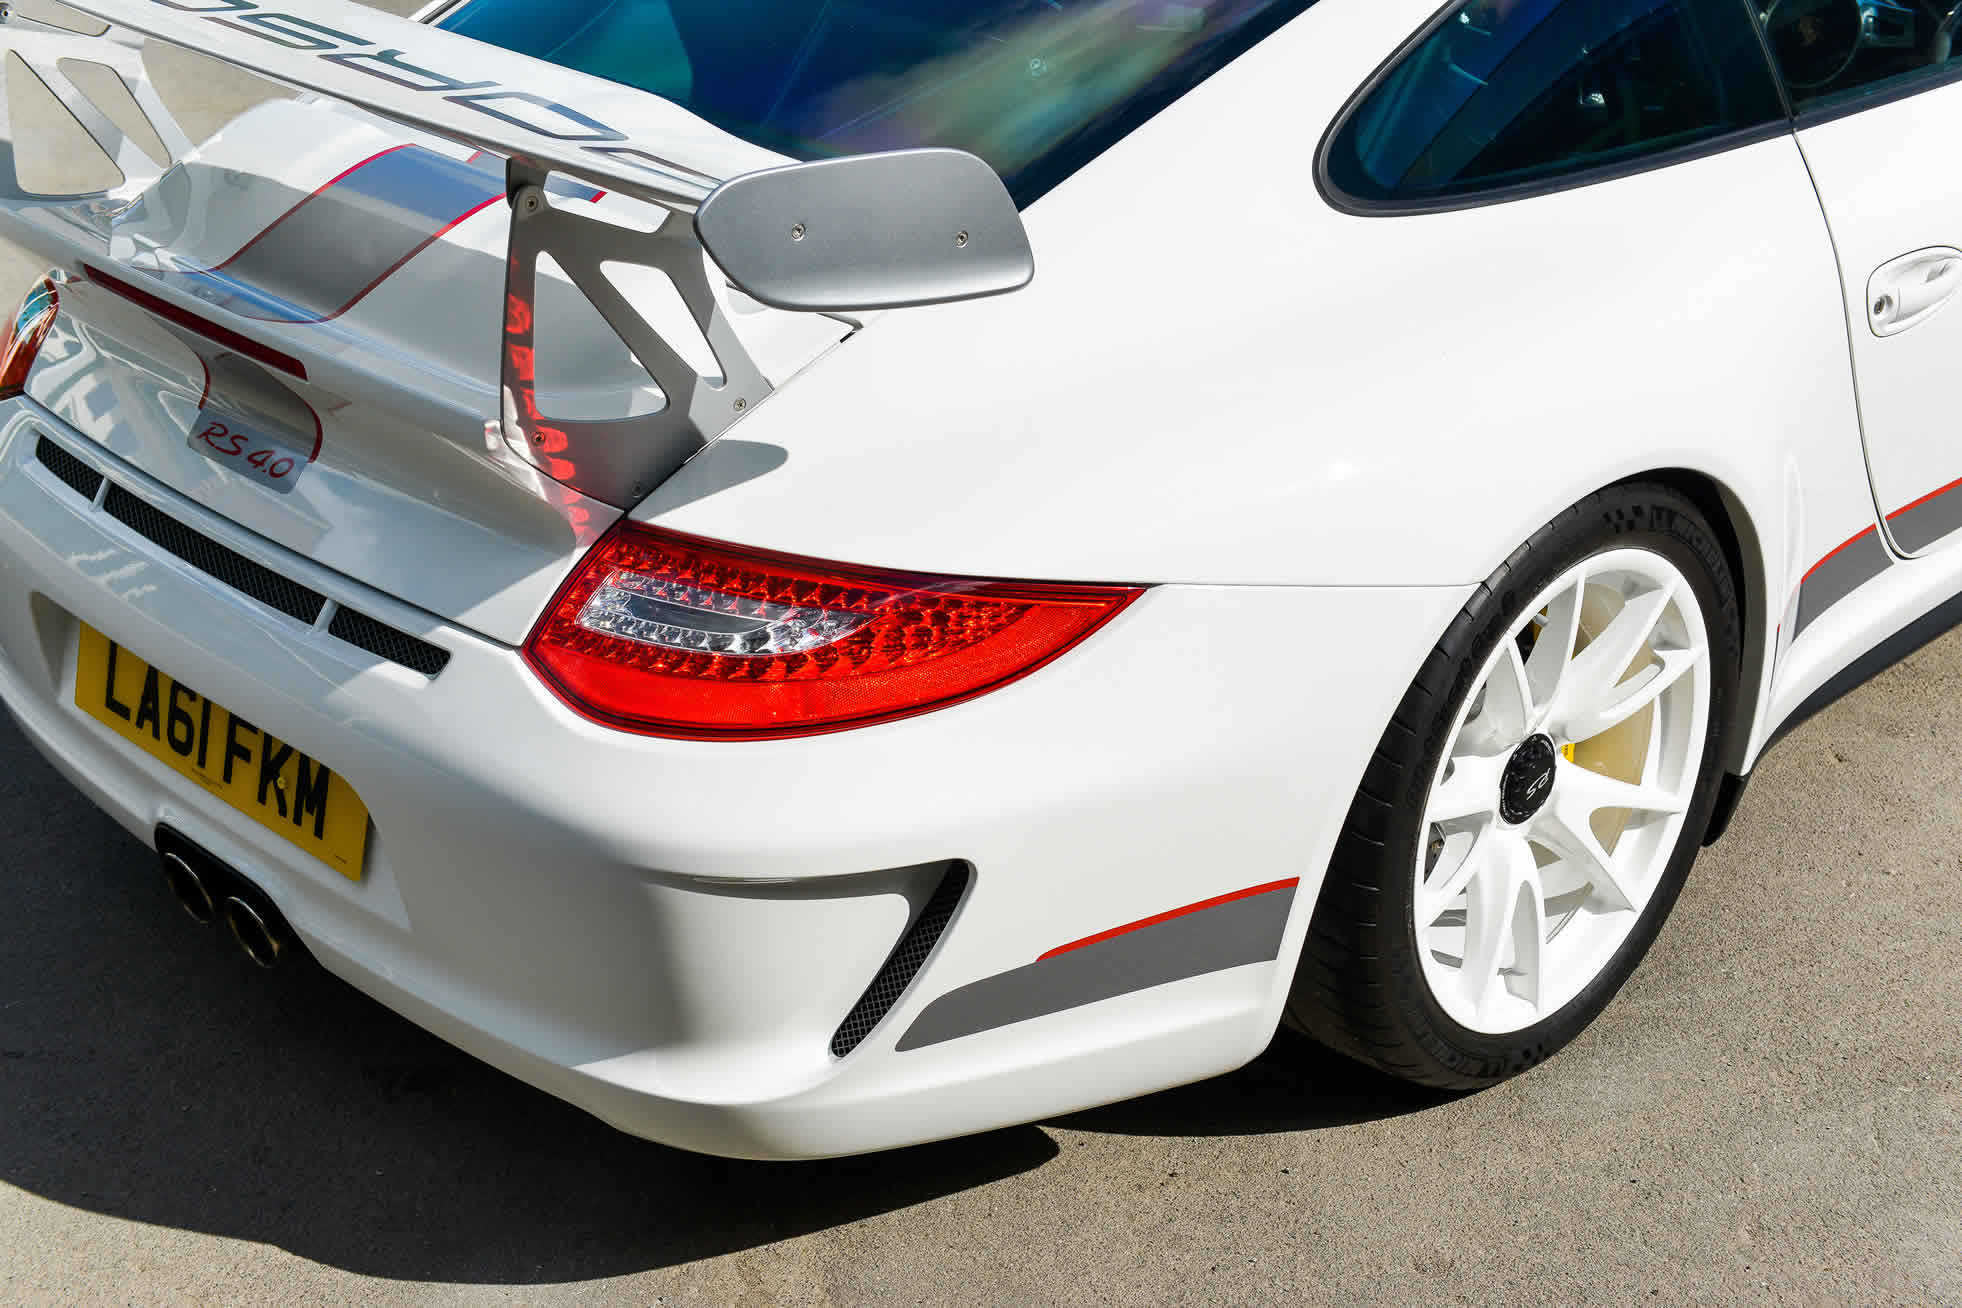 For sale 2012 Porsche 911 GT3 RS 4.0 Sports Purpose Bicester Heritage Oxfordshire rear wing